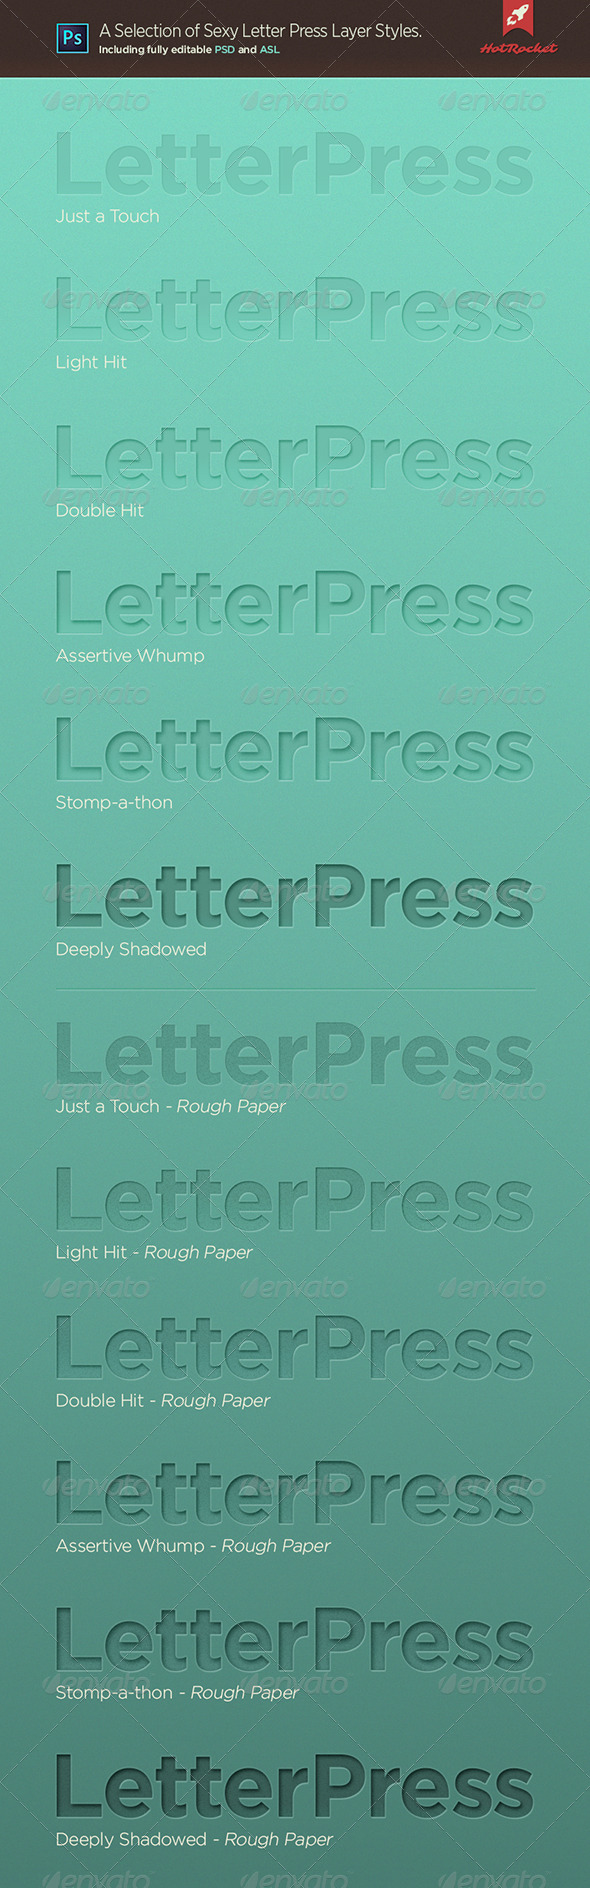 GraphicRiver Letterpress Layer Styles for Photoshop Set1 6182157